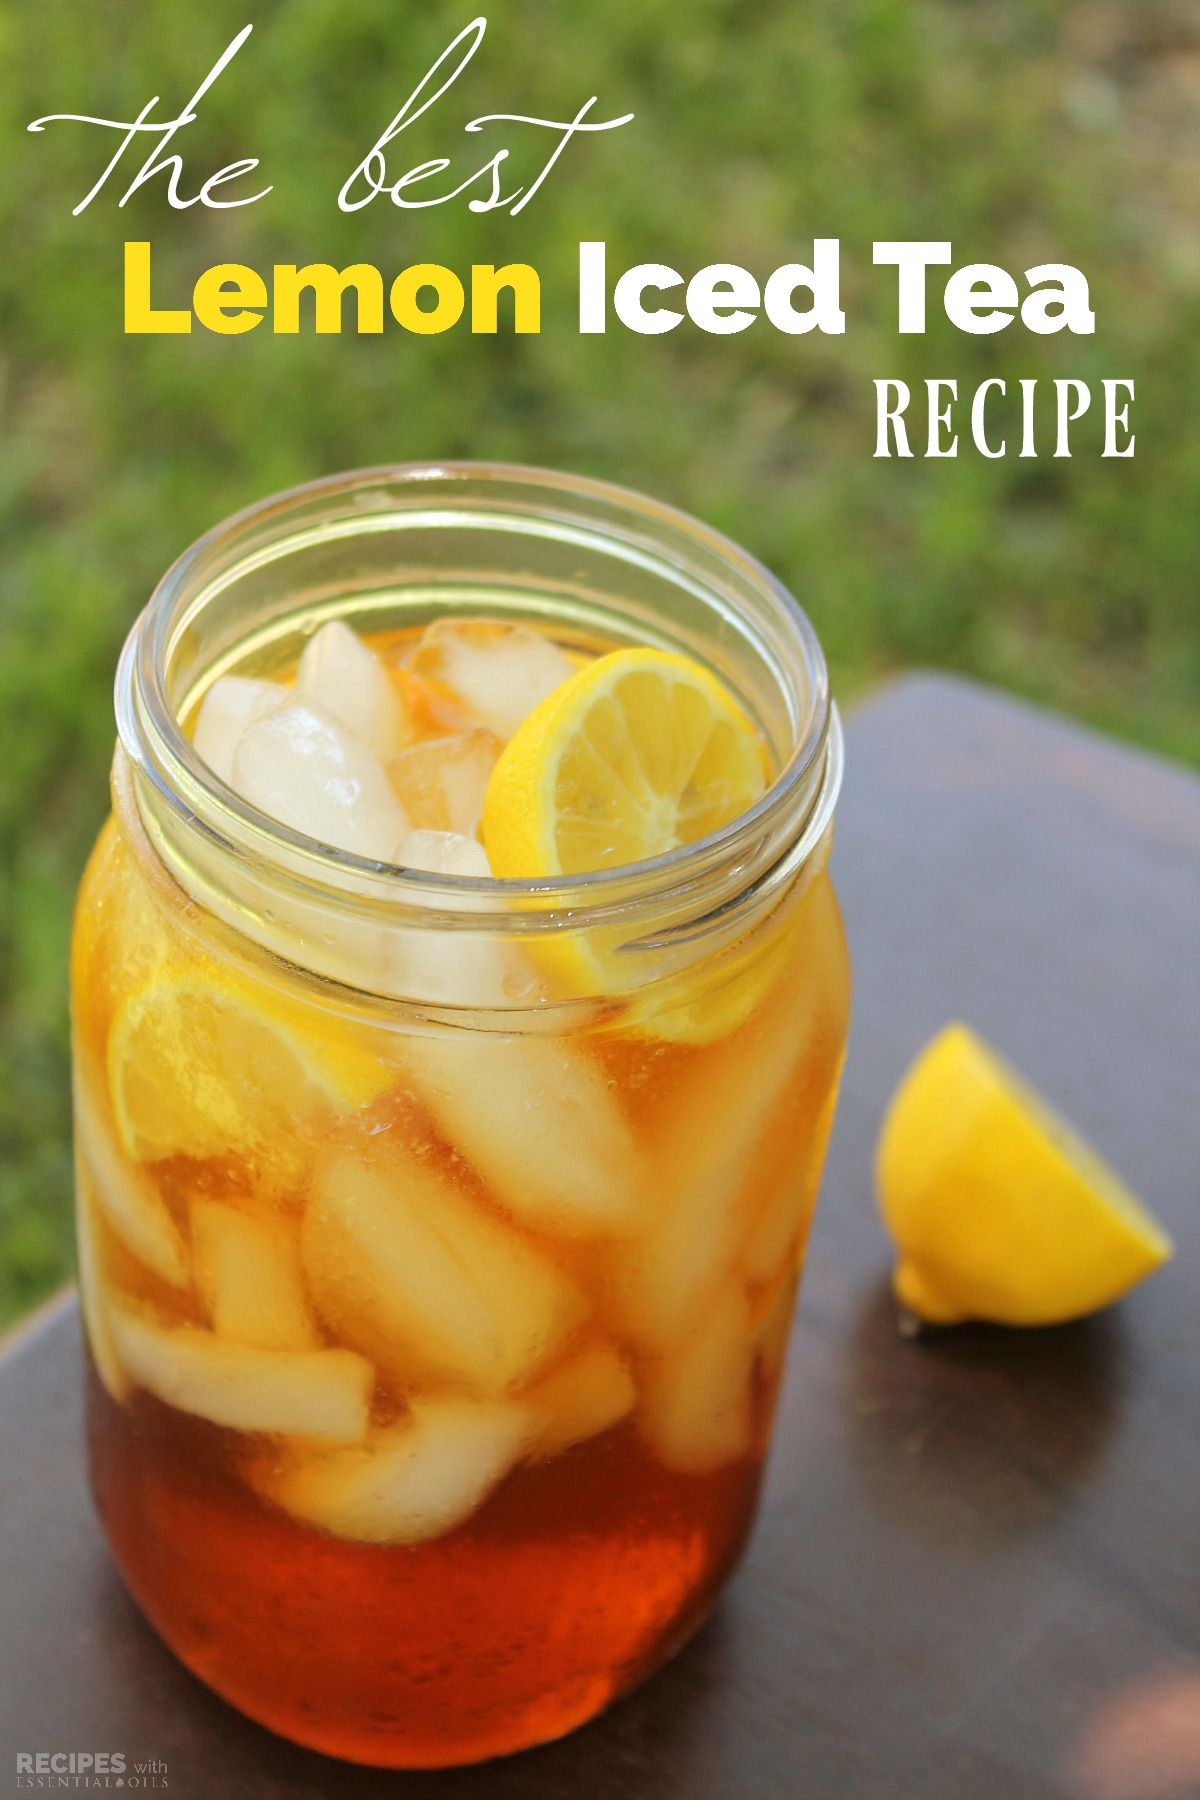 How To Make The Best Lemon Iced Tea Recipes With Essential Oils